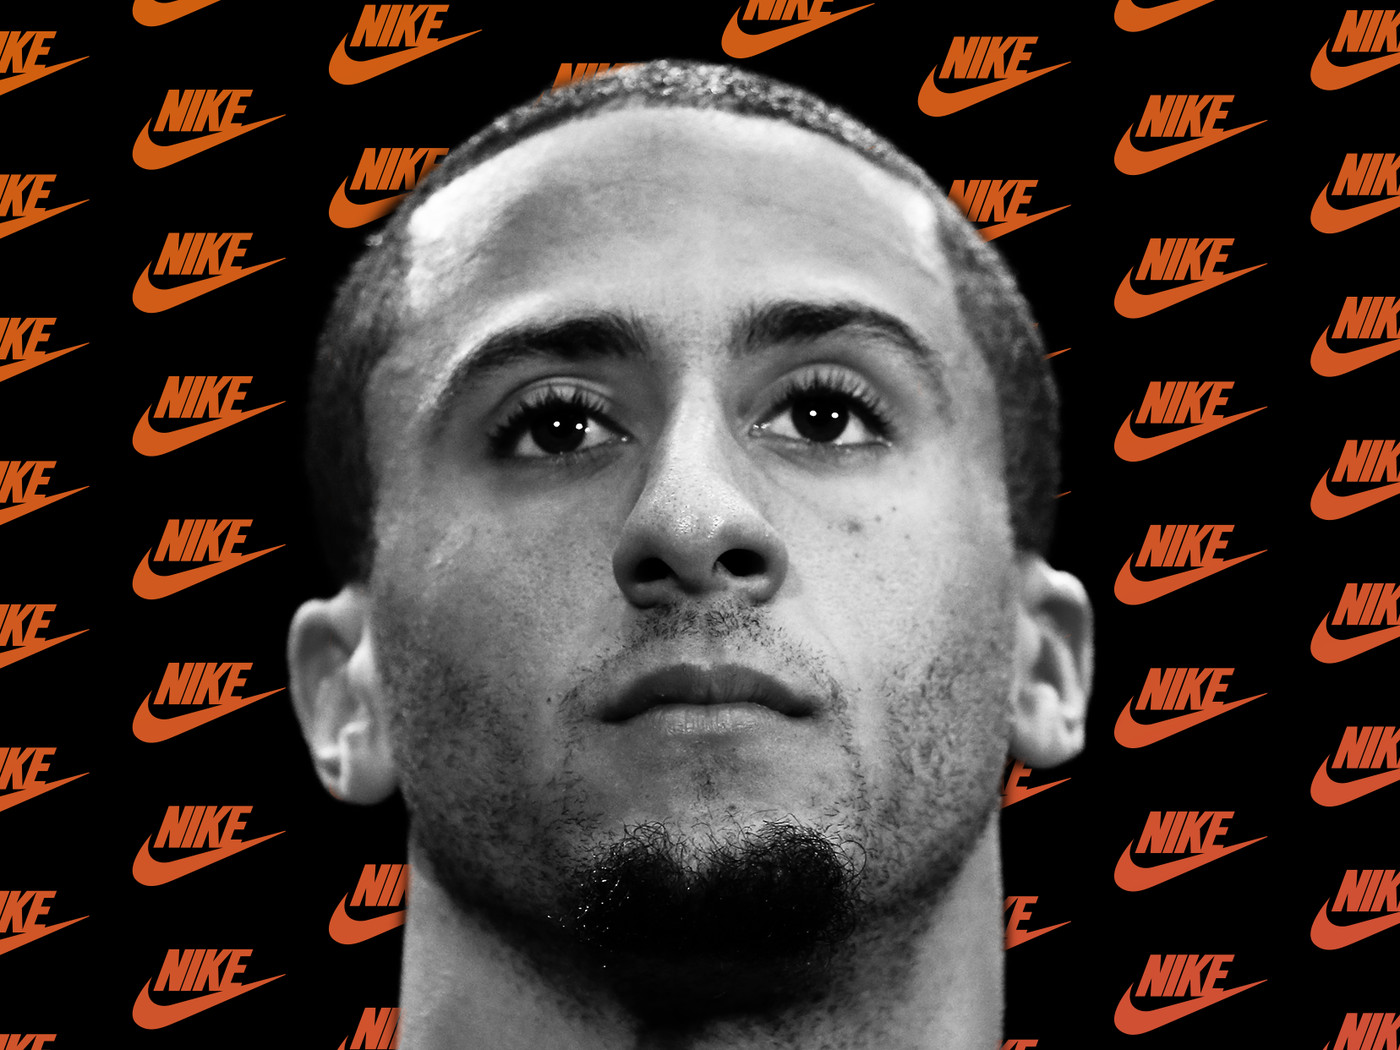 Nike, Dick's Sporting Goods, and other brands got political in 2018